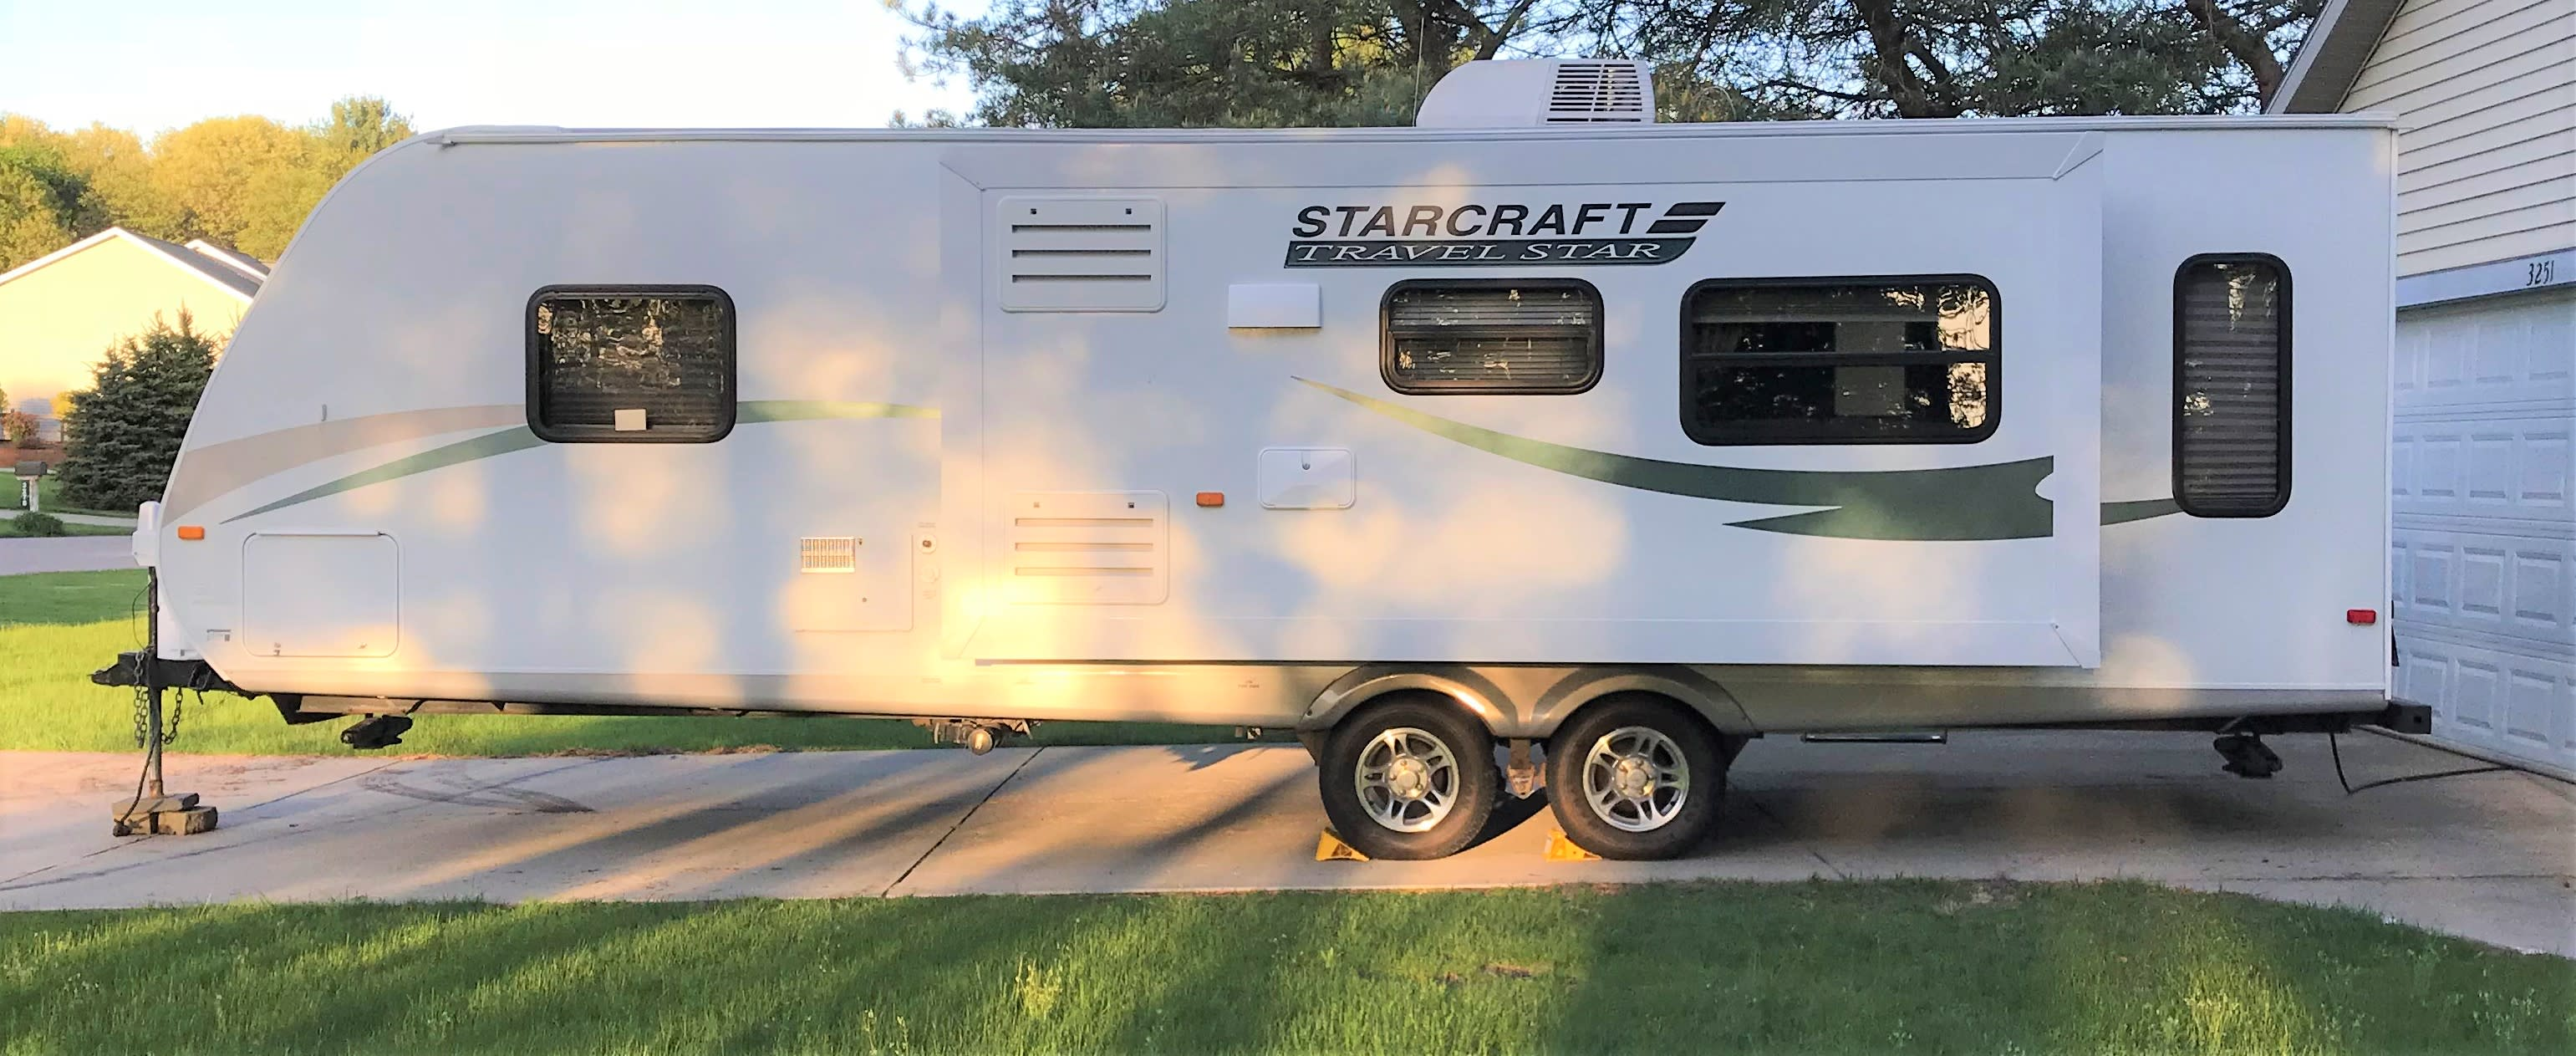 Outdoor show located on this side of the unit. Starcraft Travel Star 2011